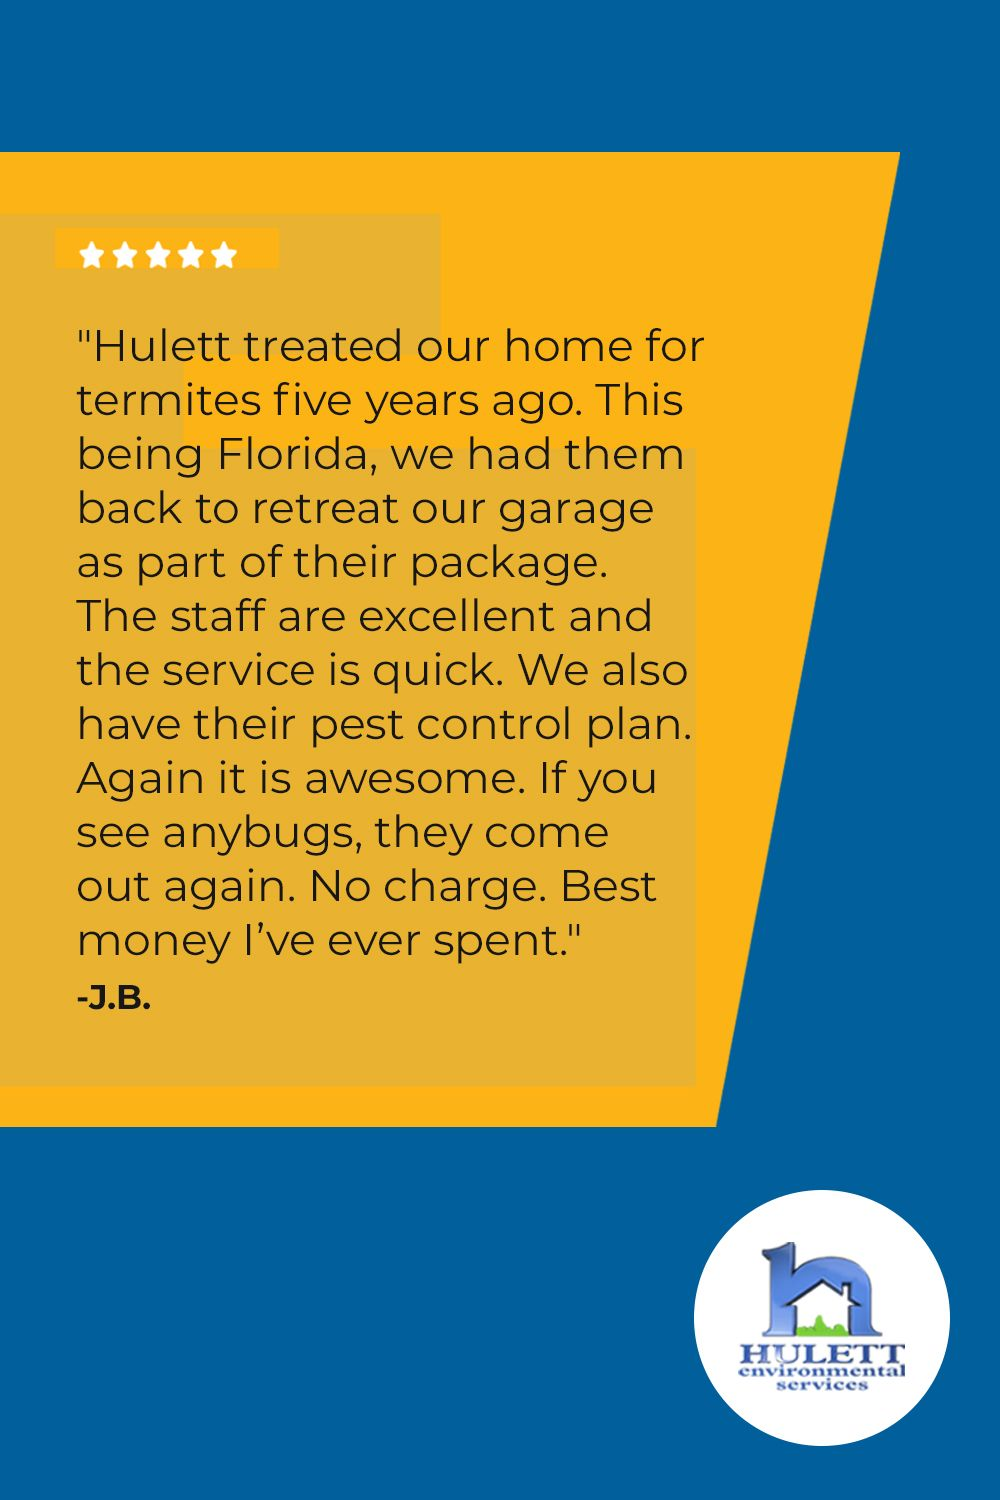 Hulett customer review pest control how to plan pests